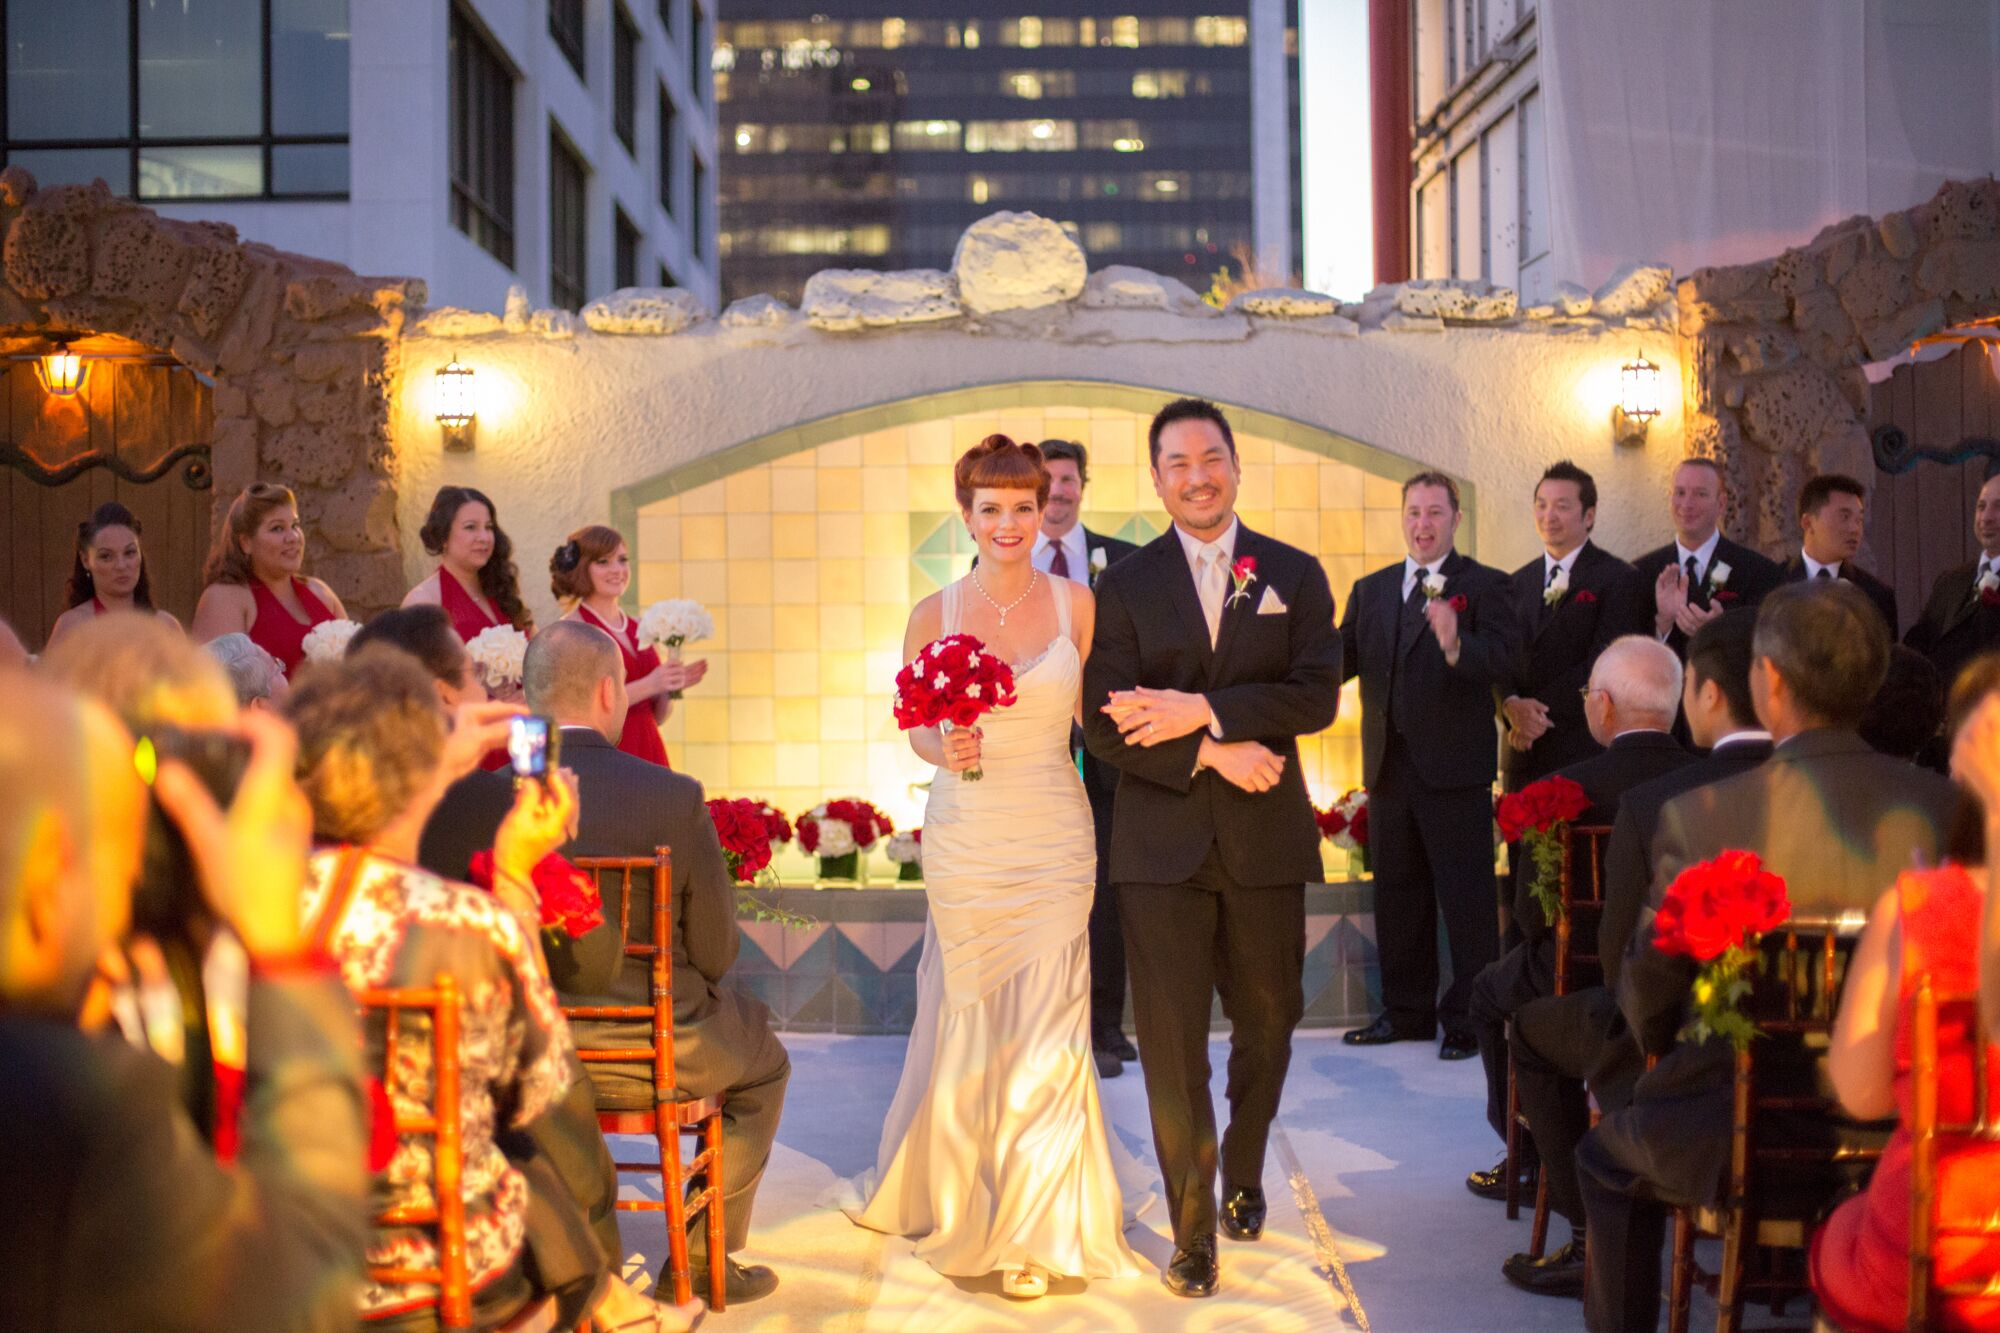 A Vintage-Inspired Wedding At Oviatt Penthouse In Los